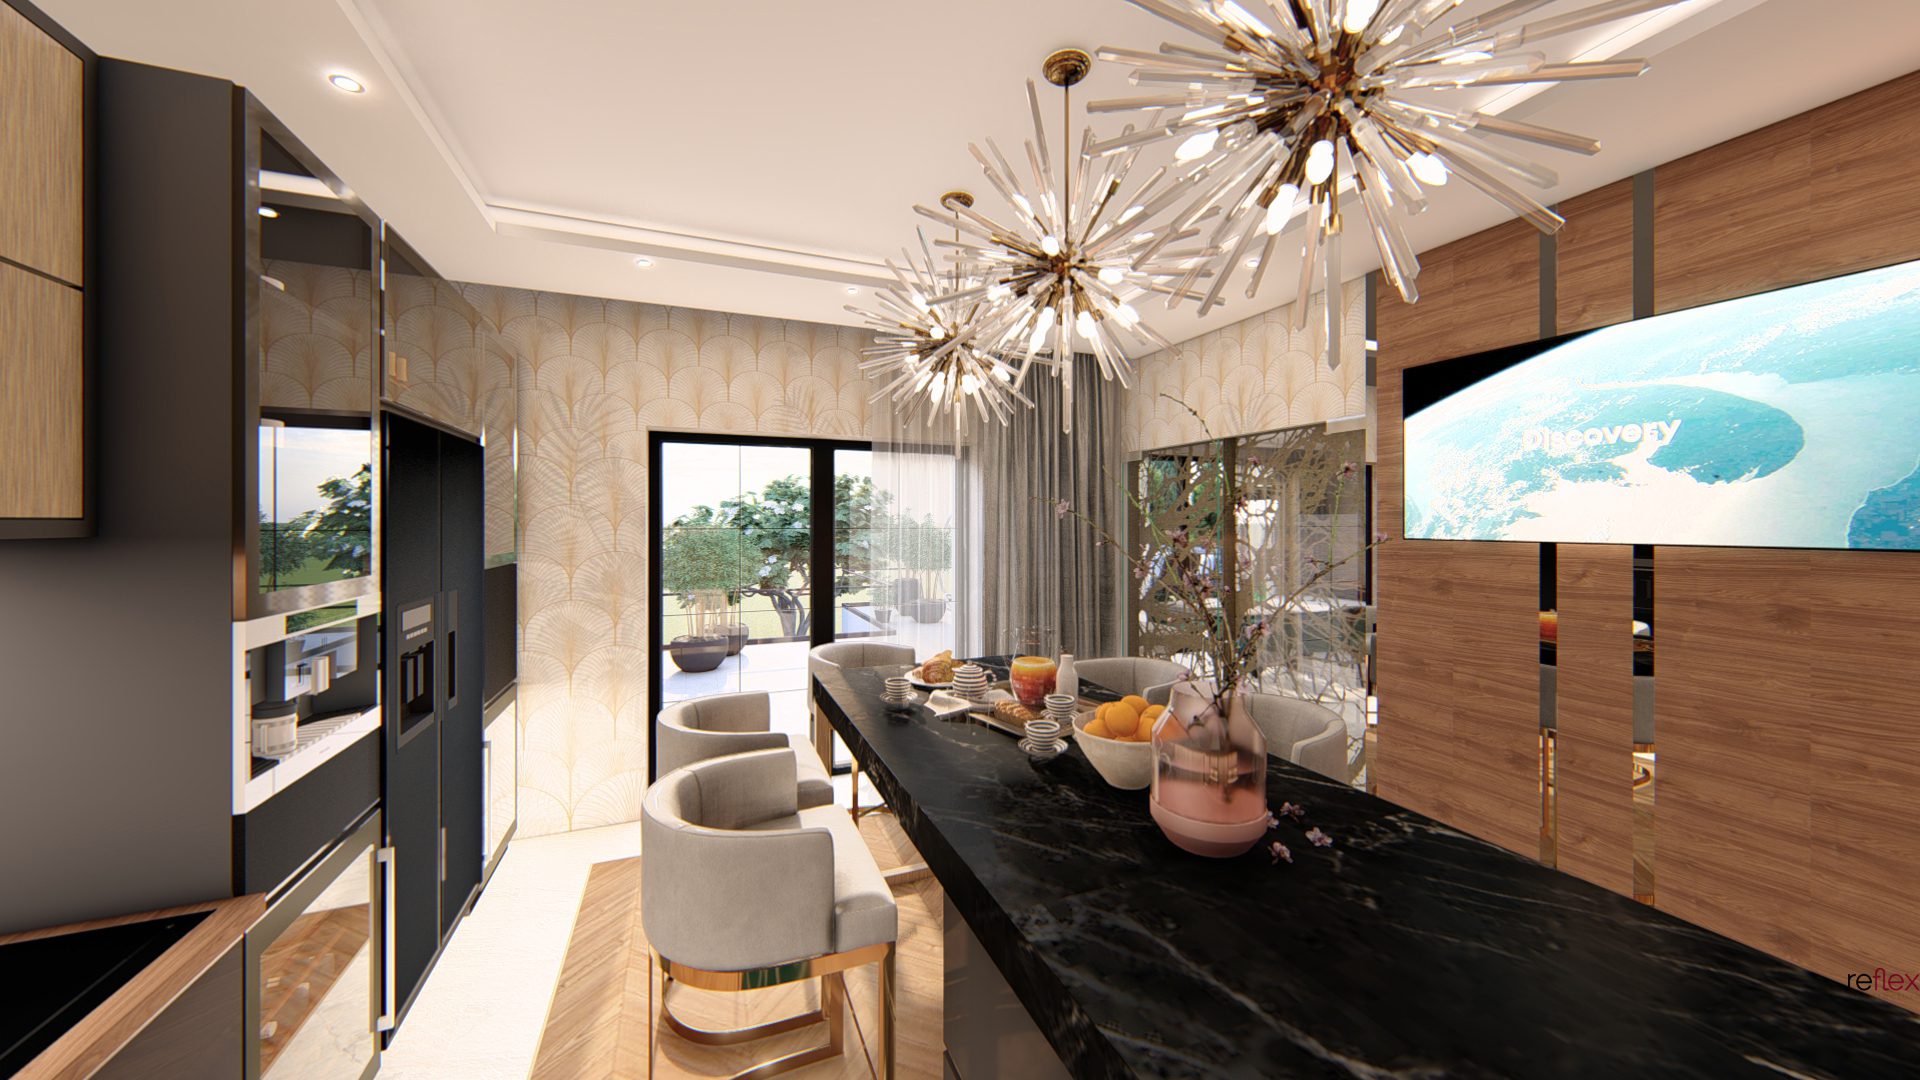 017 INTERIOR DESIGN HOUSE D